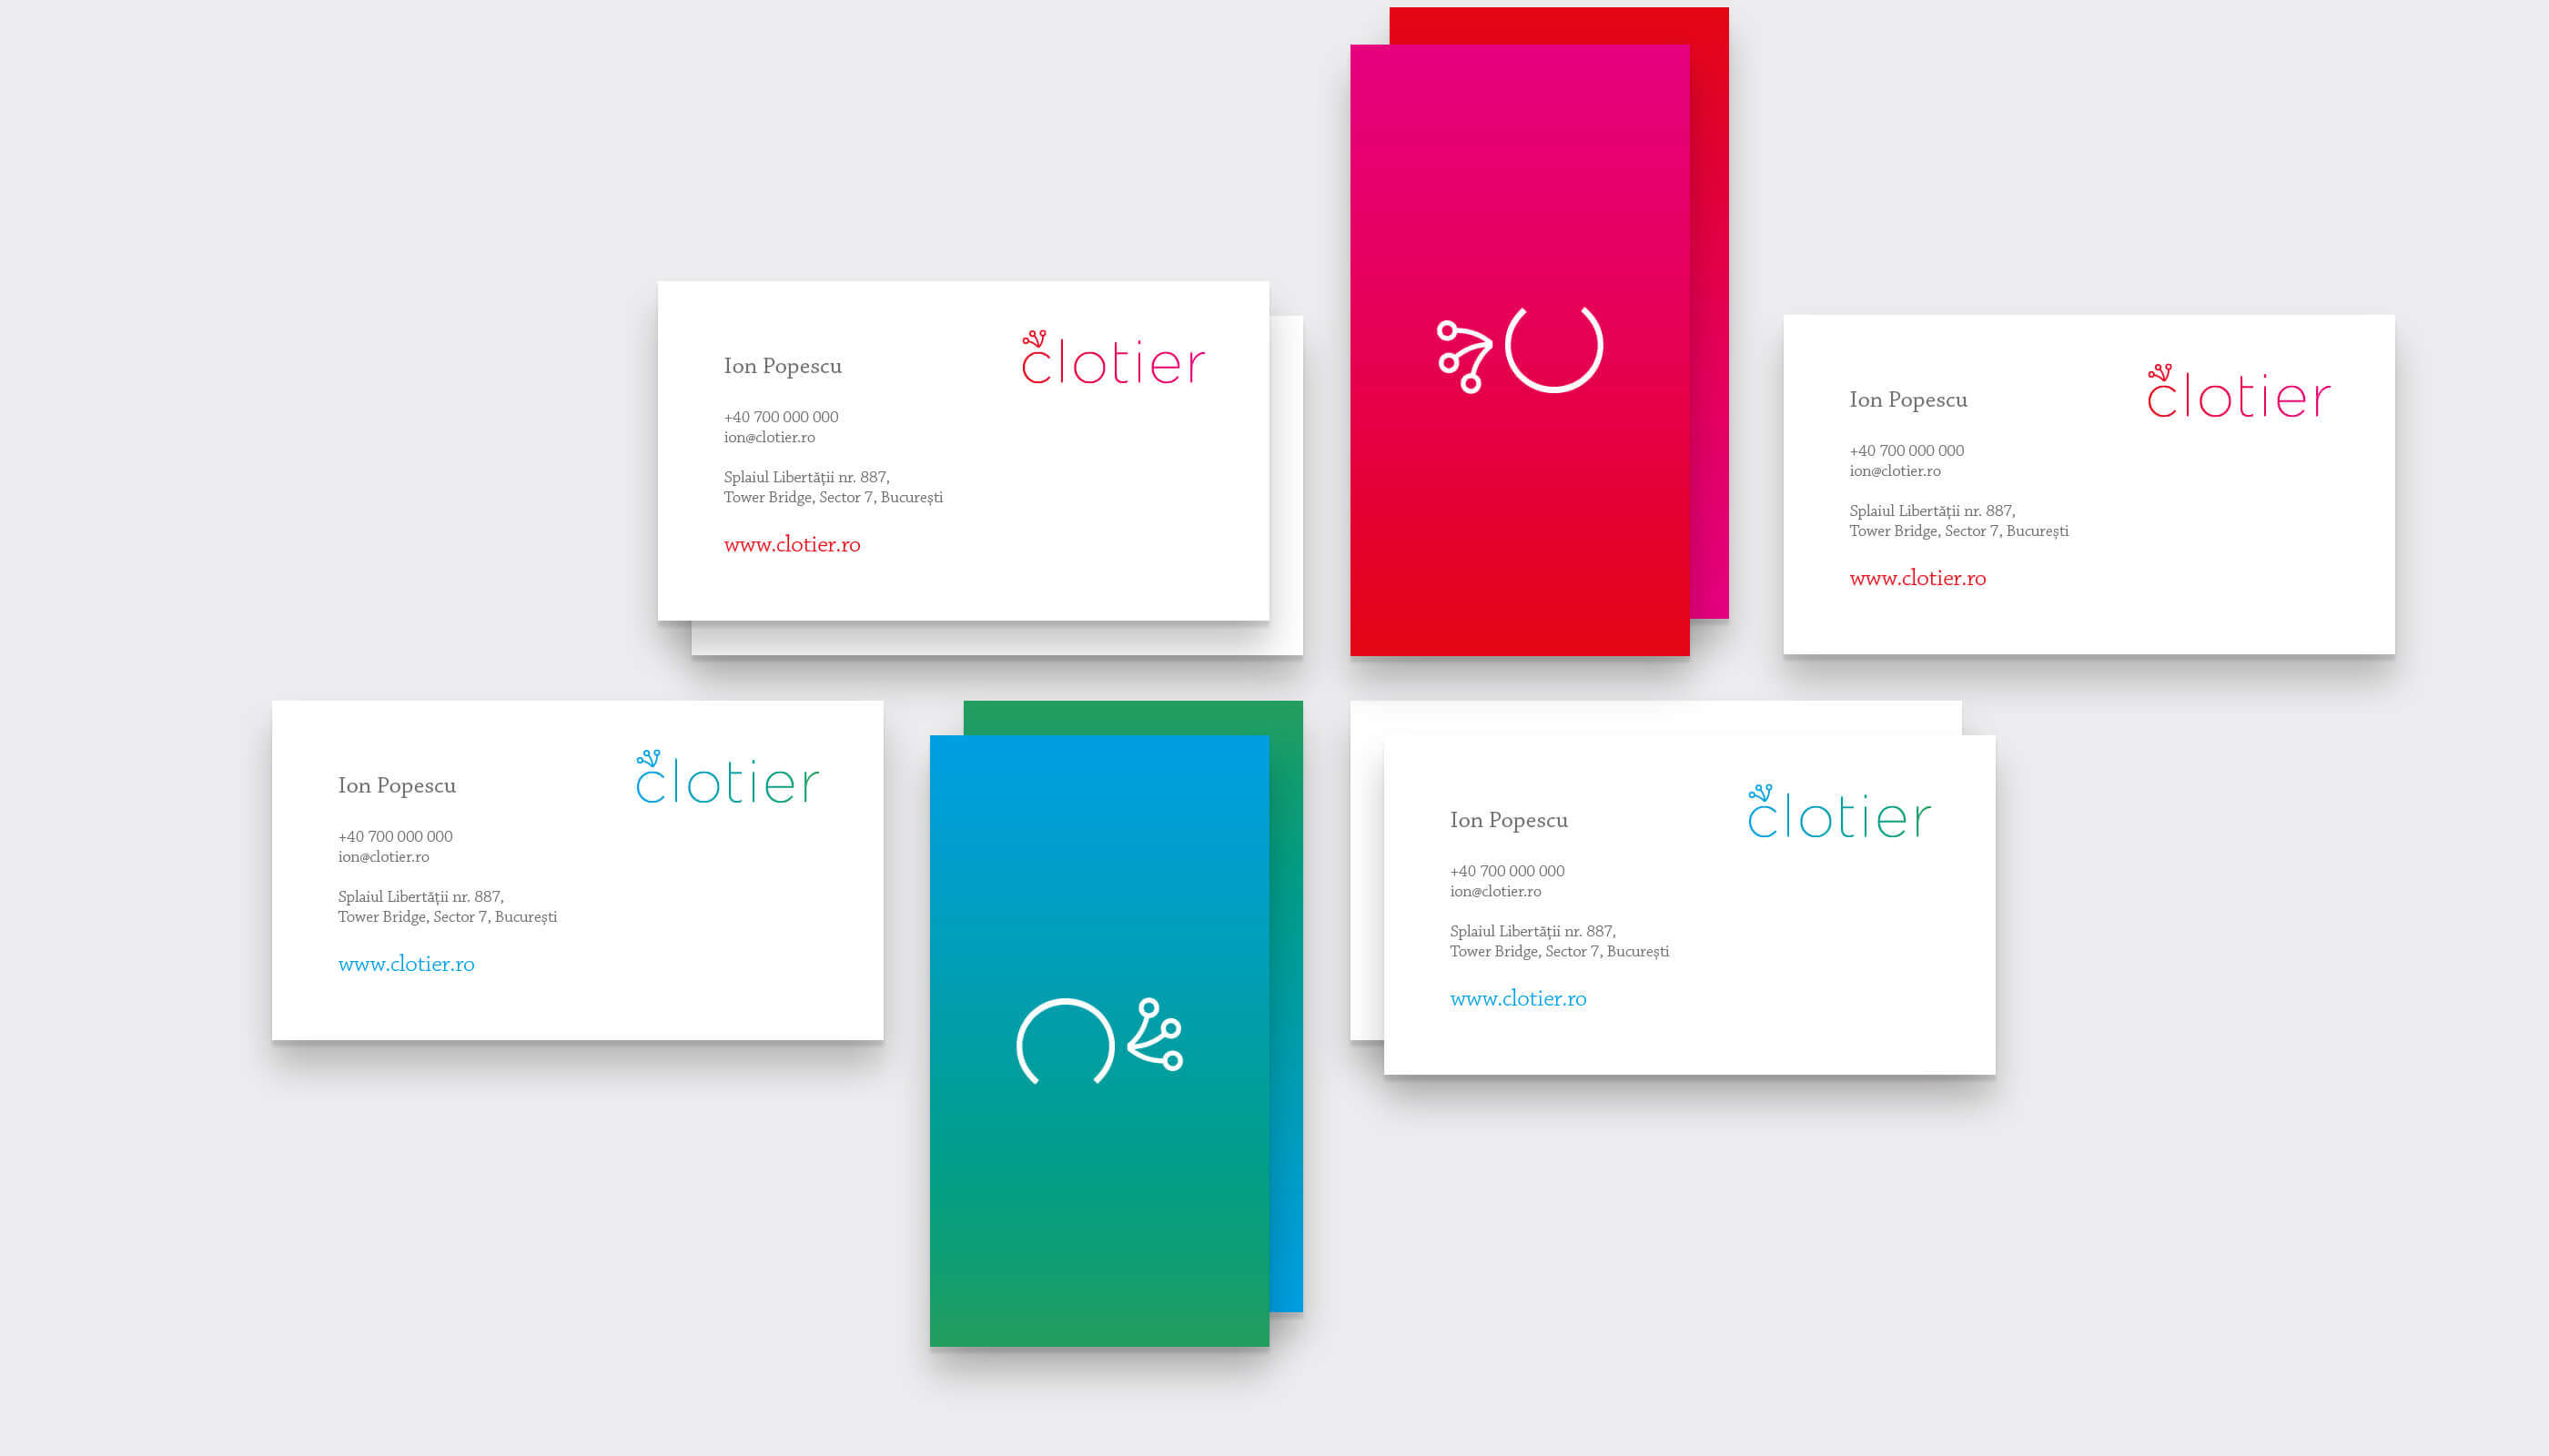 Clotier stationery